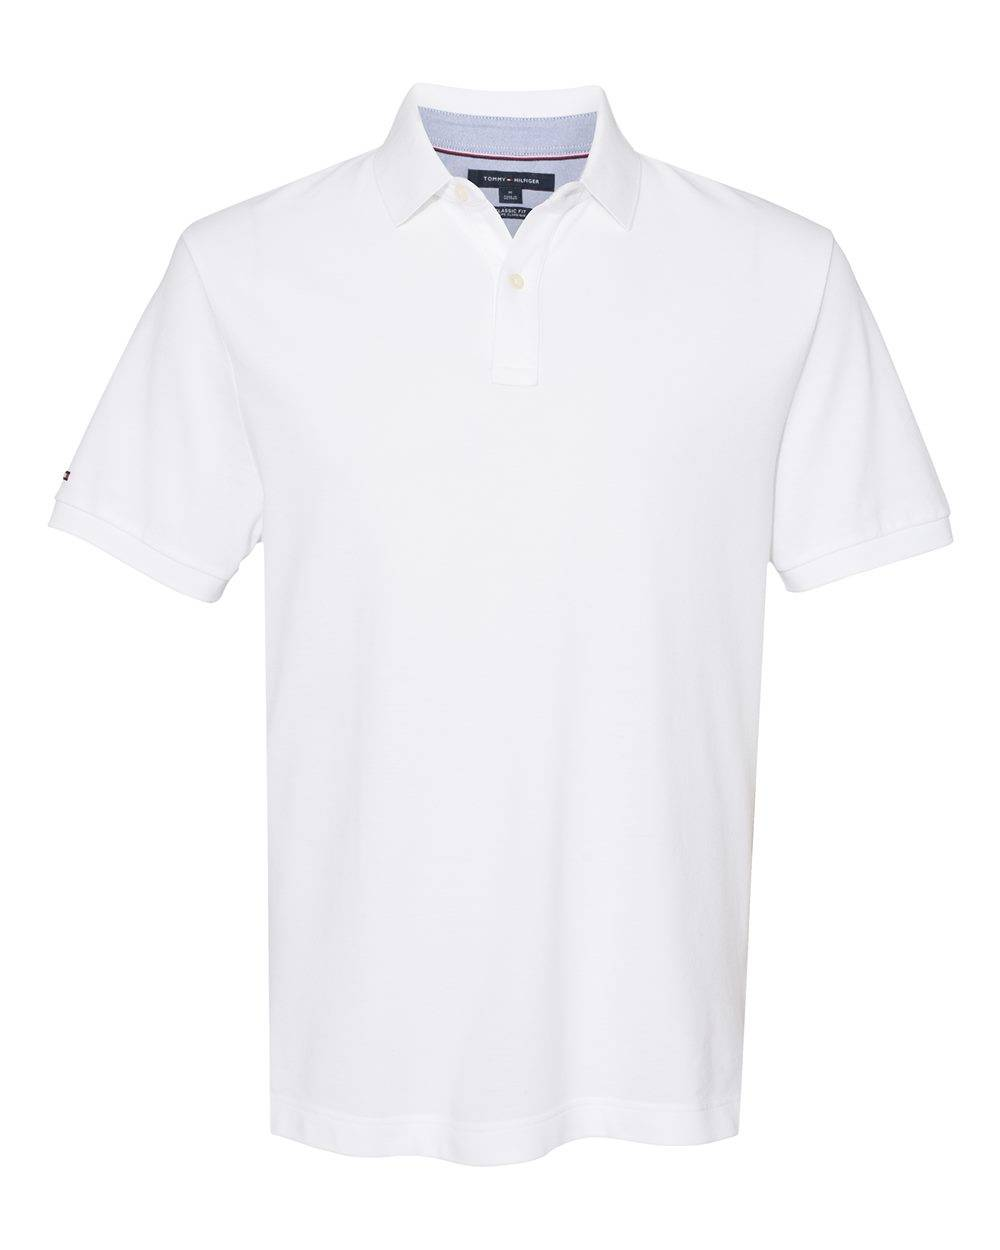 Tommy Hilfiger - Classic Fit Ivy Piqu Sport Shirt - 13H1867 - Bright White - Large